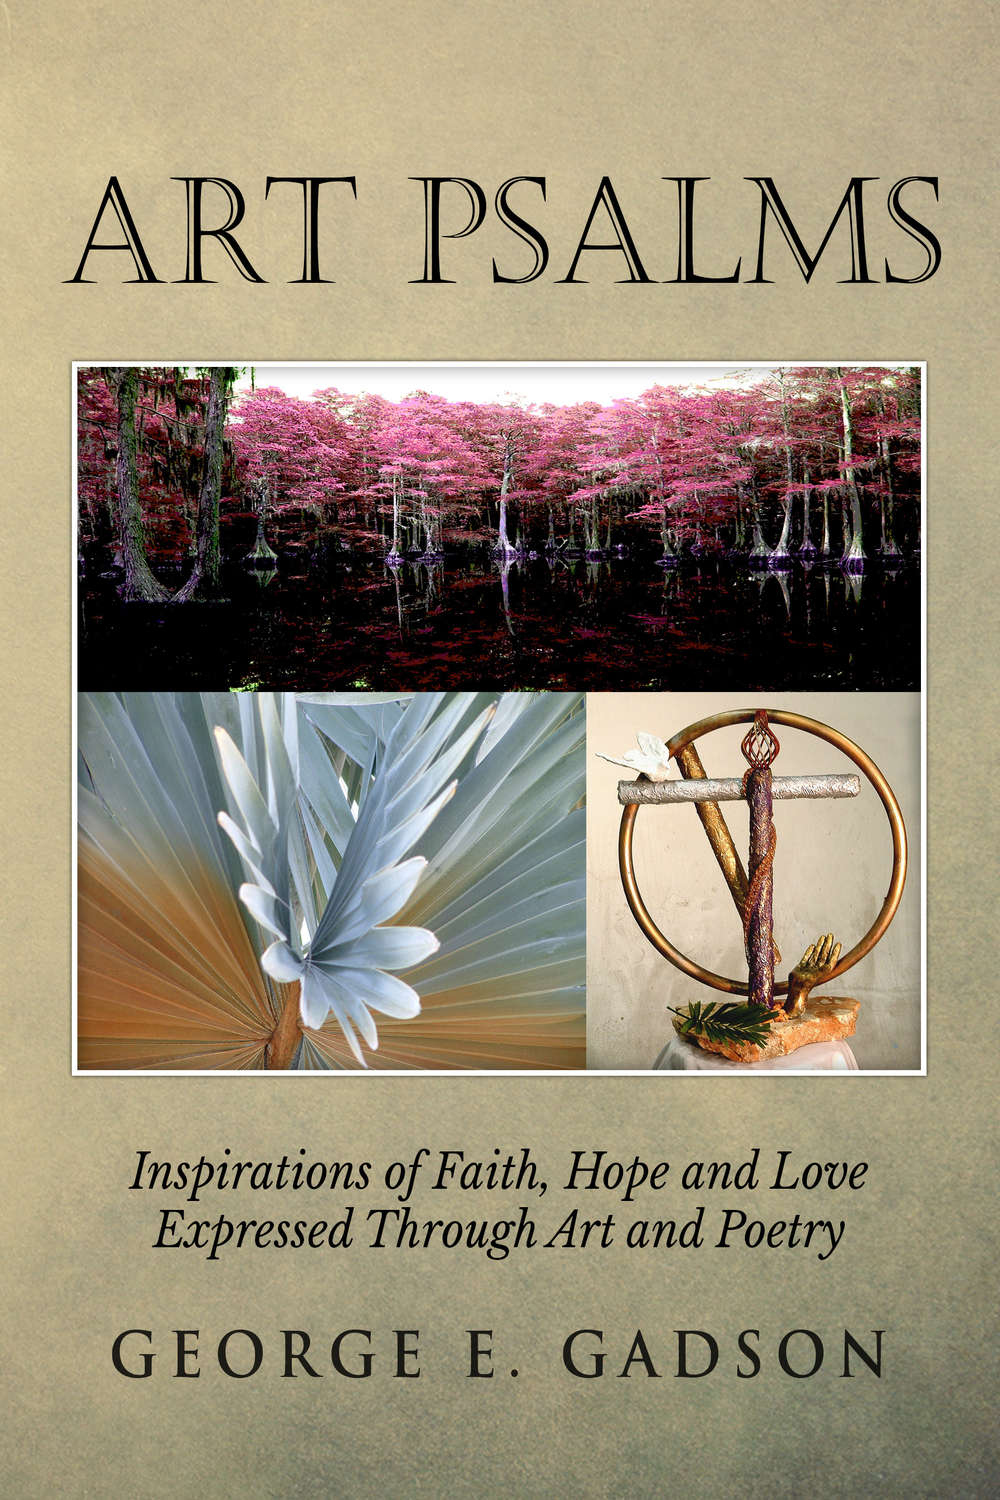 New Book Release of art and poetry by George Gadson.